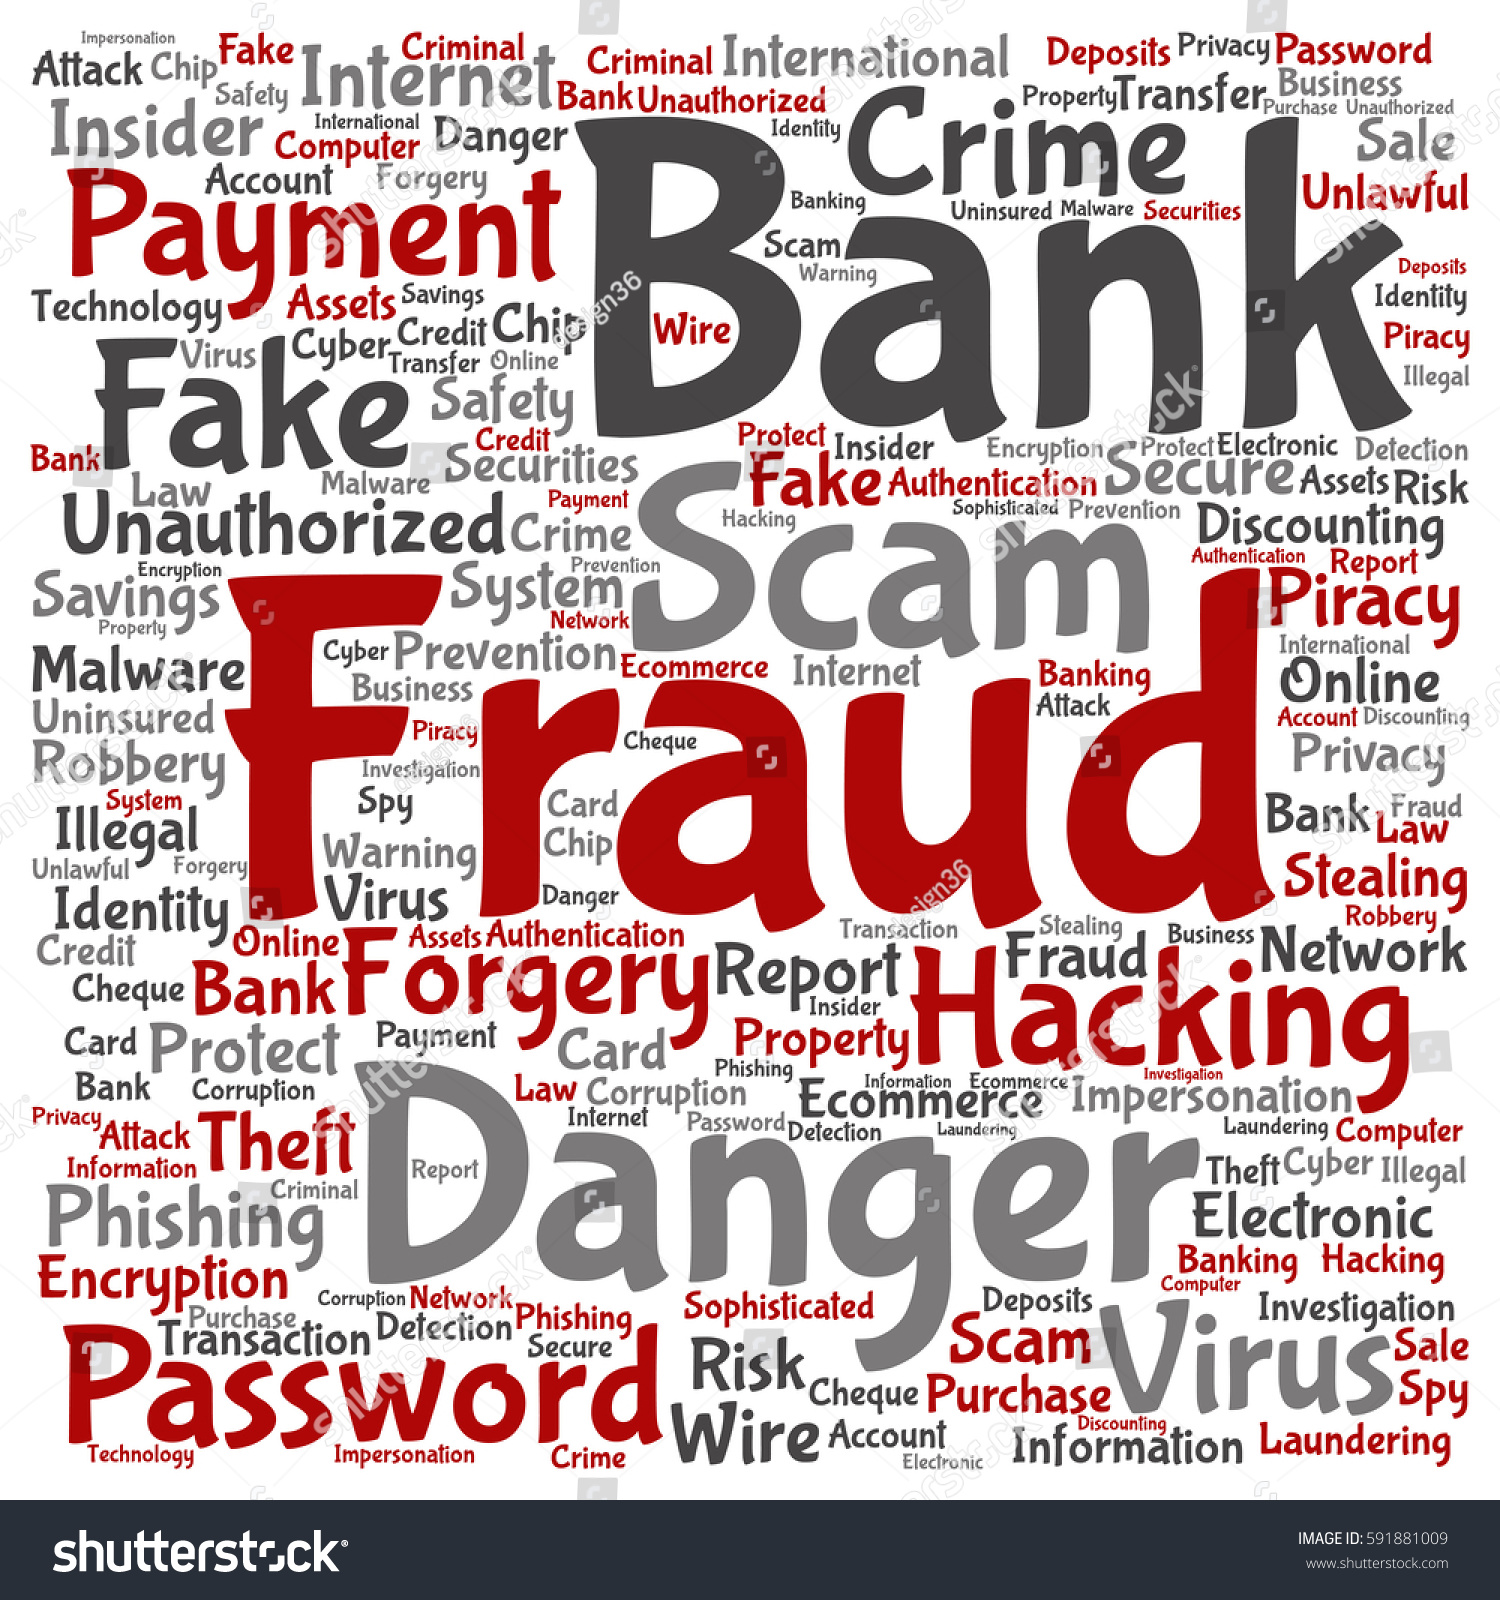 bank fraud Bank account fraud has occurred if transactions you haven't made show up on your bank statement bank account fraud could happen as a result of identity theft, when cards or bank account information has been stolen notify your bank immediately if you see any unusual activity on your account.